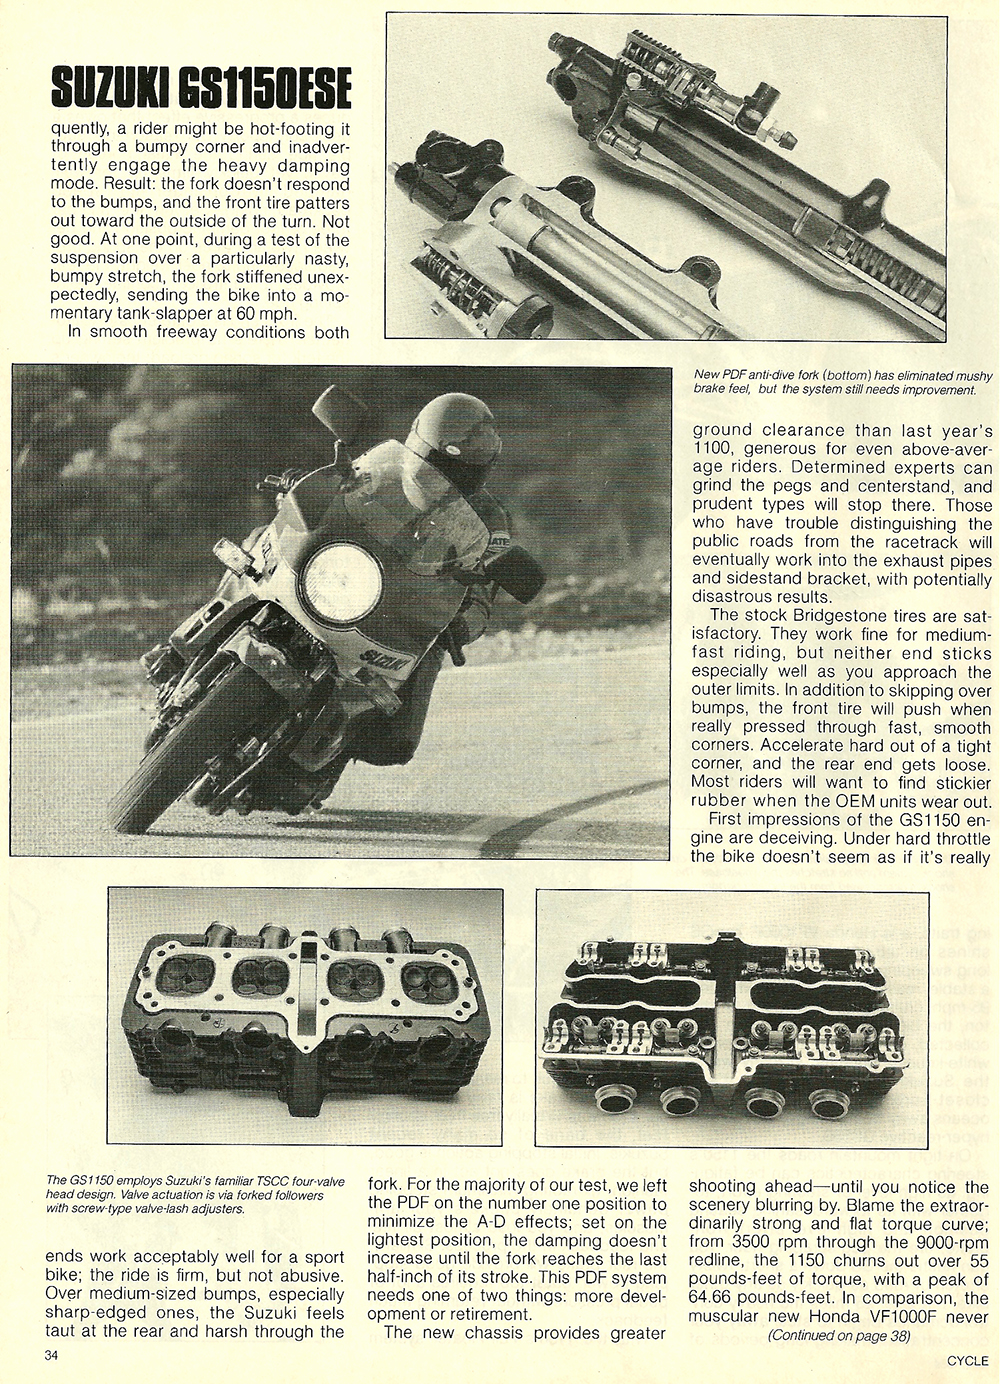 1984 Suzuki GS1150ESE road test 7.jpg